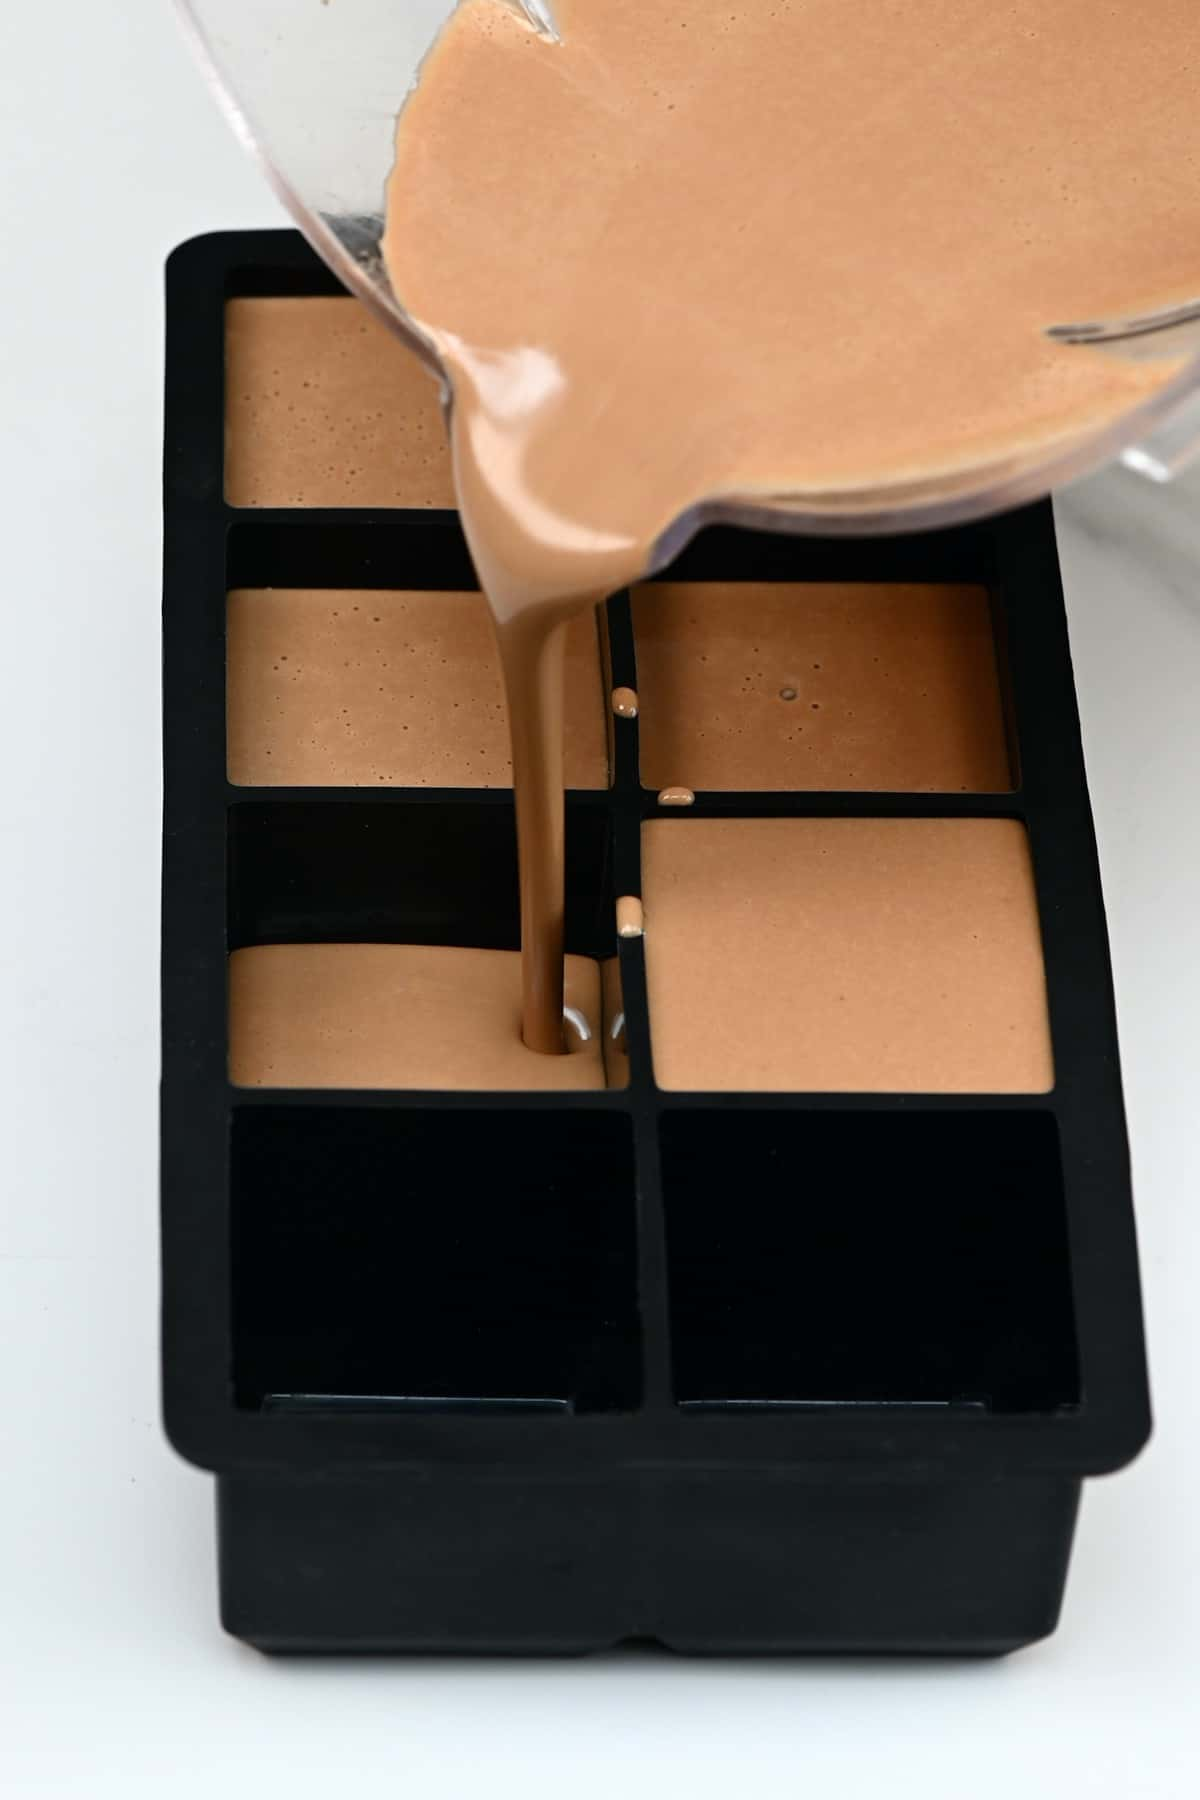 Pouring coffee ice cream in ice cube tray